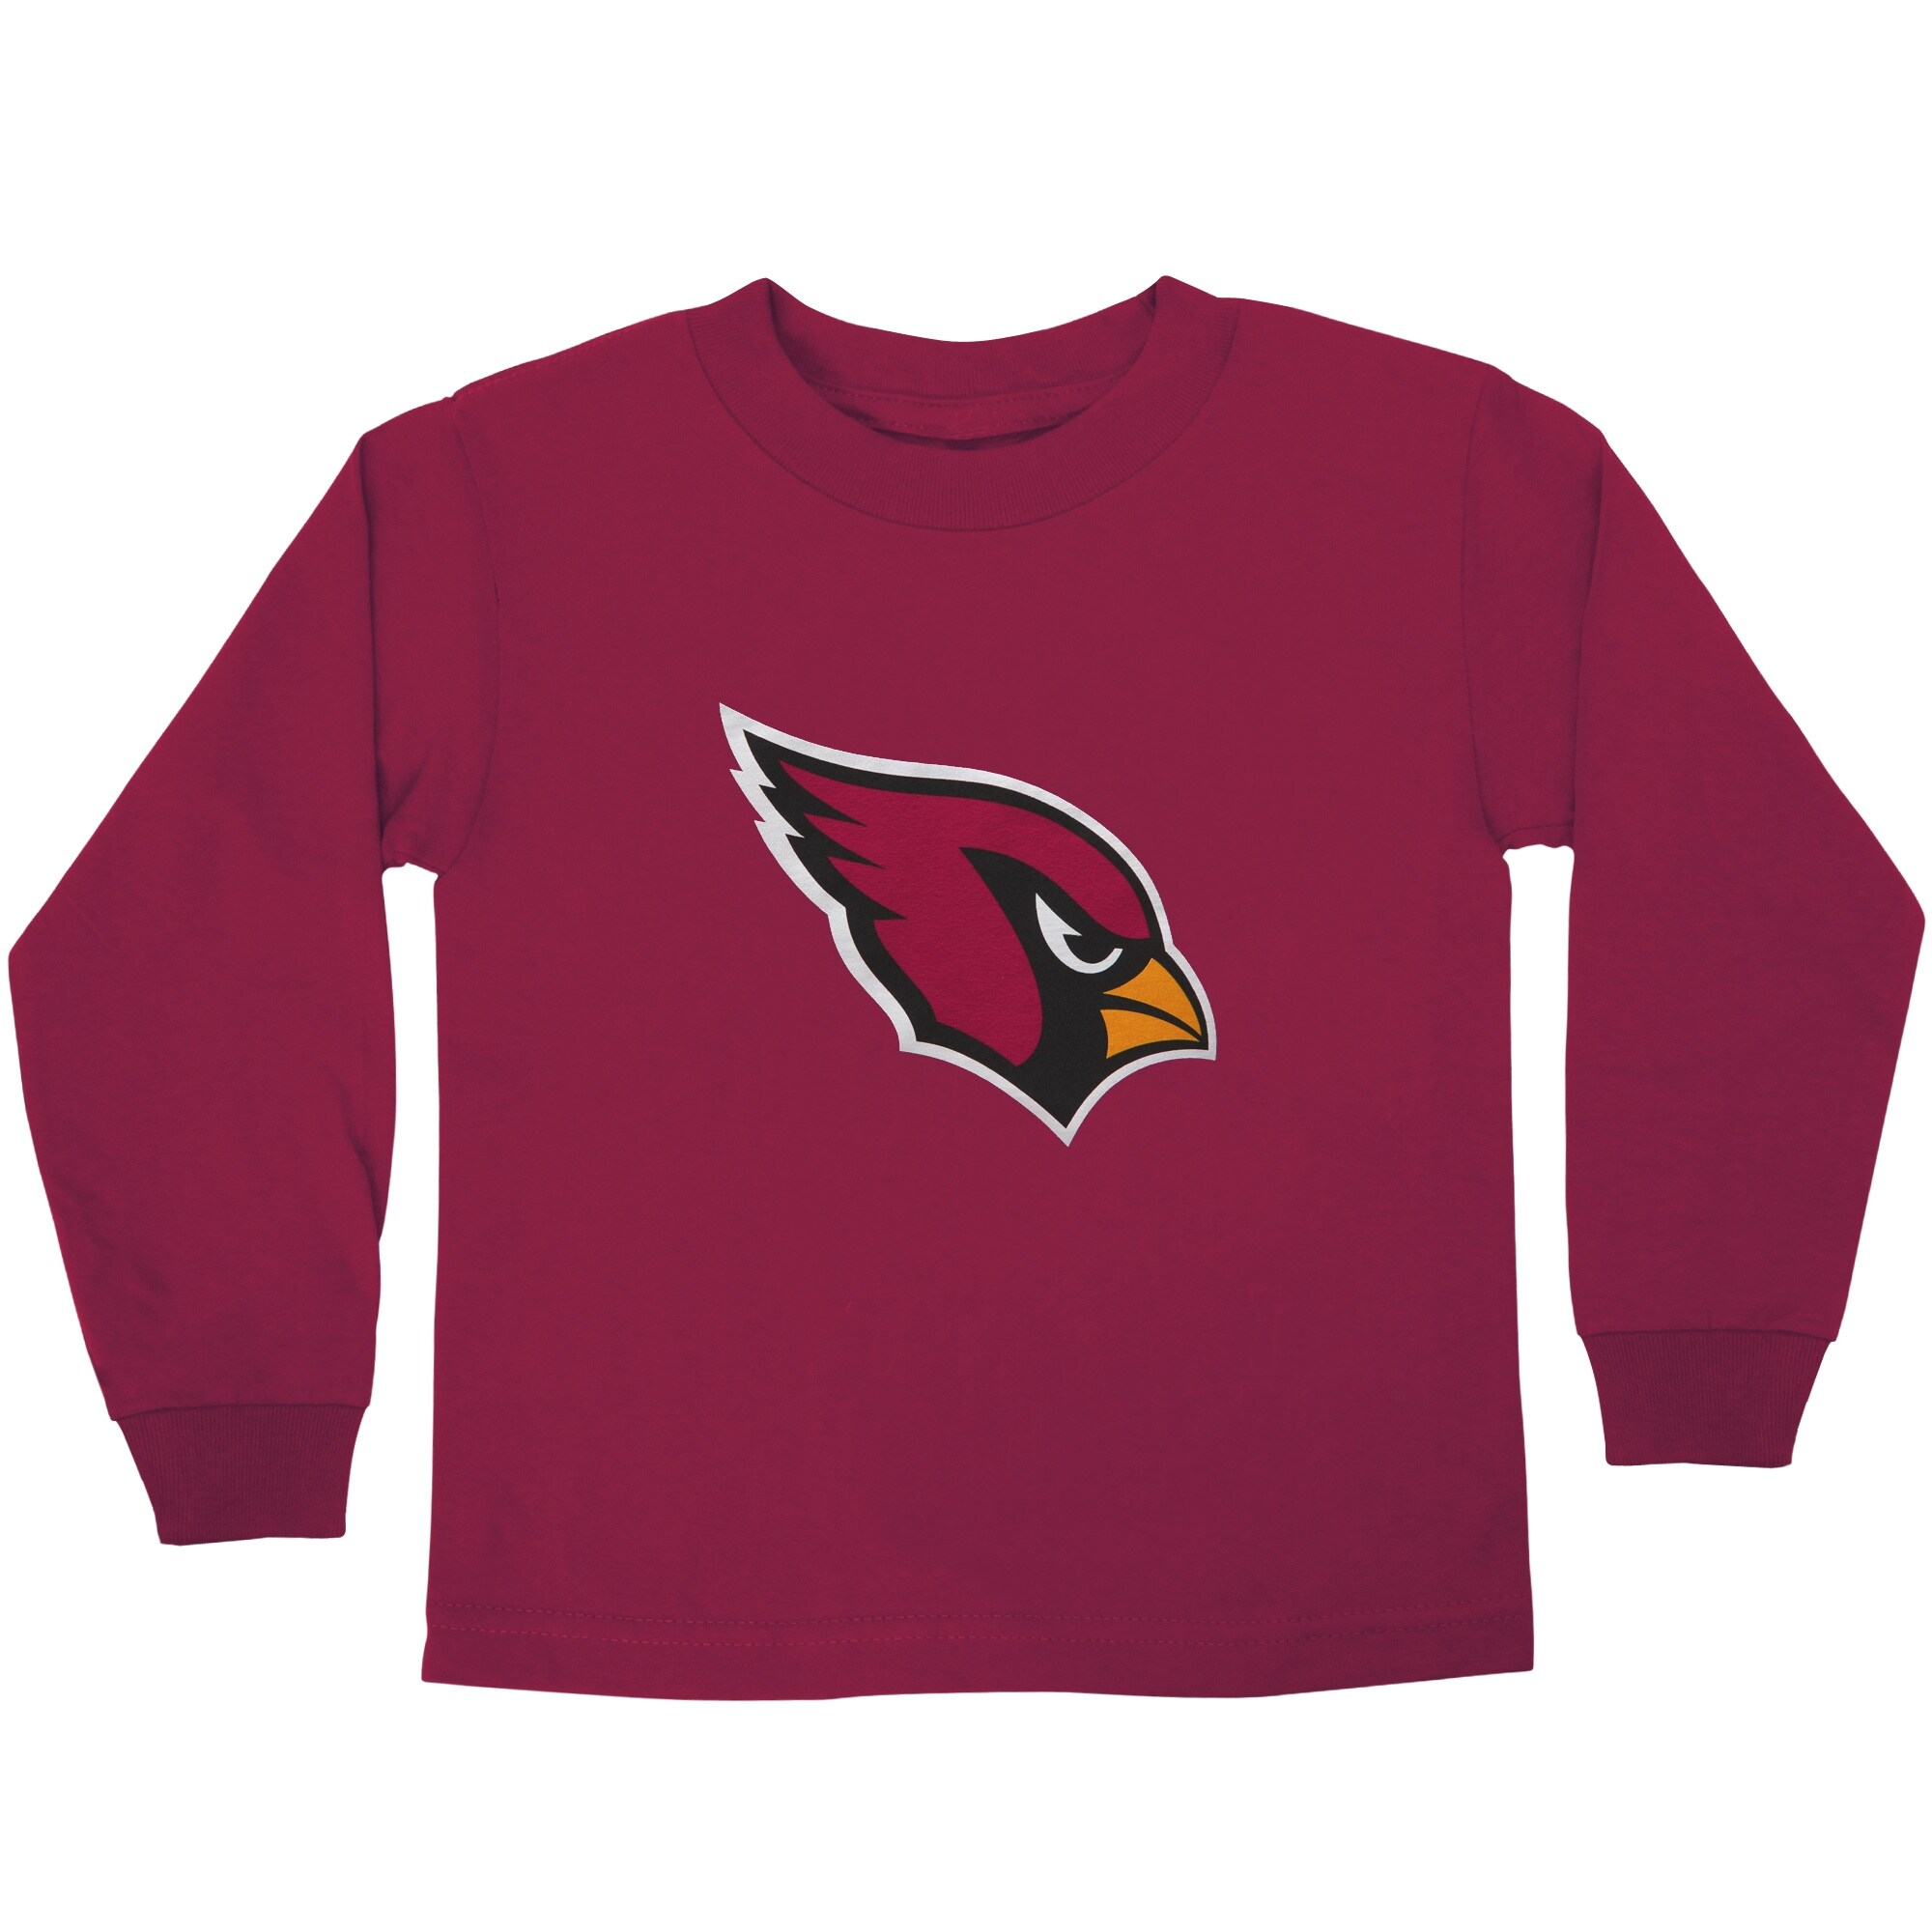 Arizona Cardinals Preschool Team Logo Long Sleeve T-Shirt - Cardinal